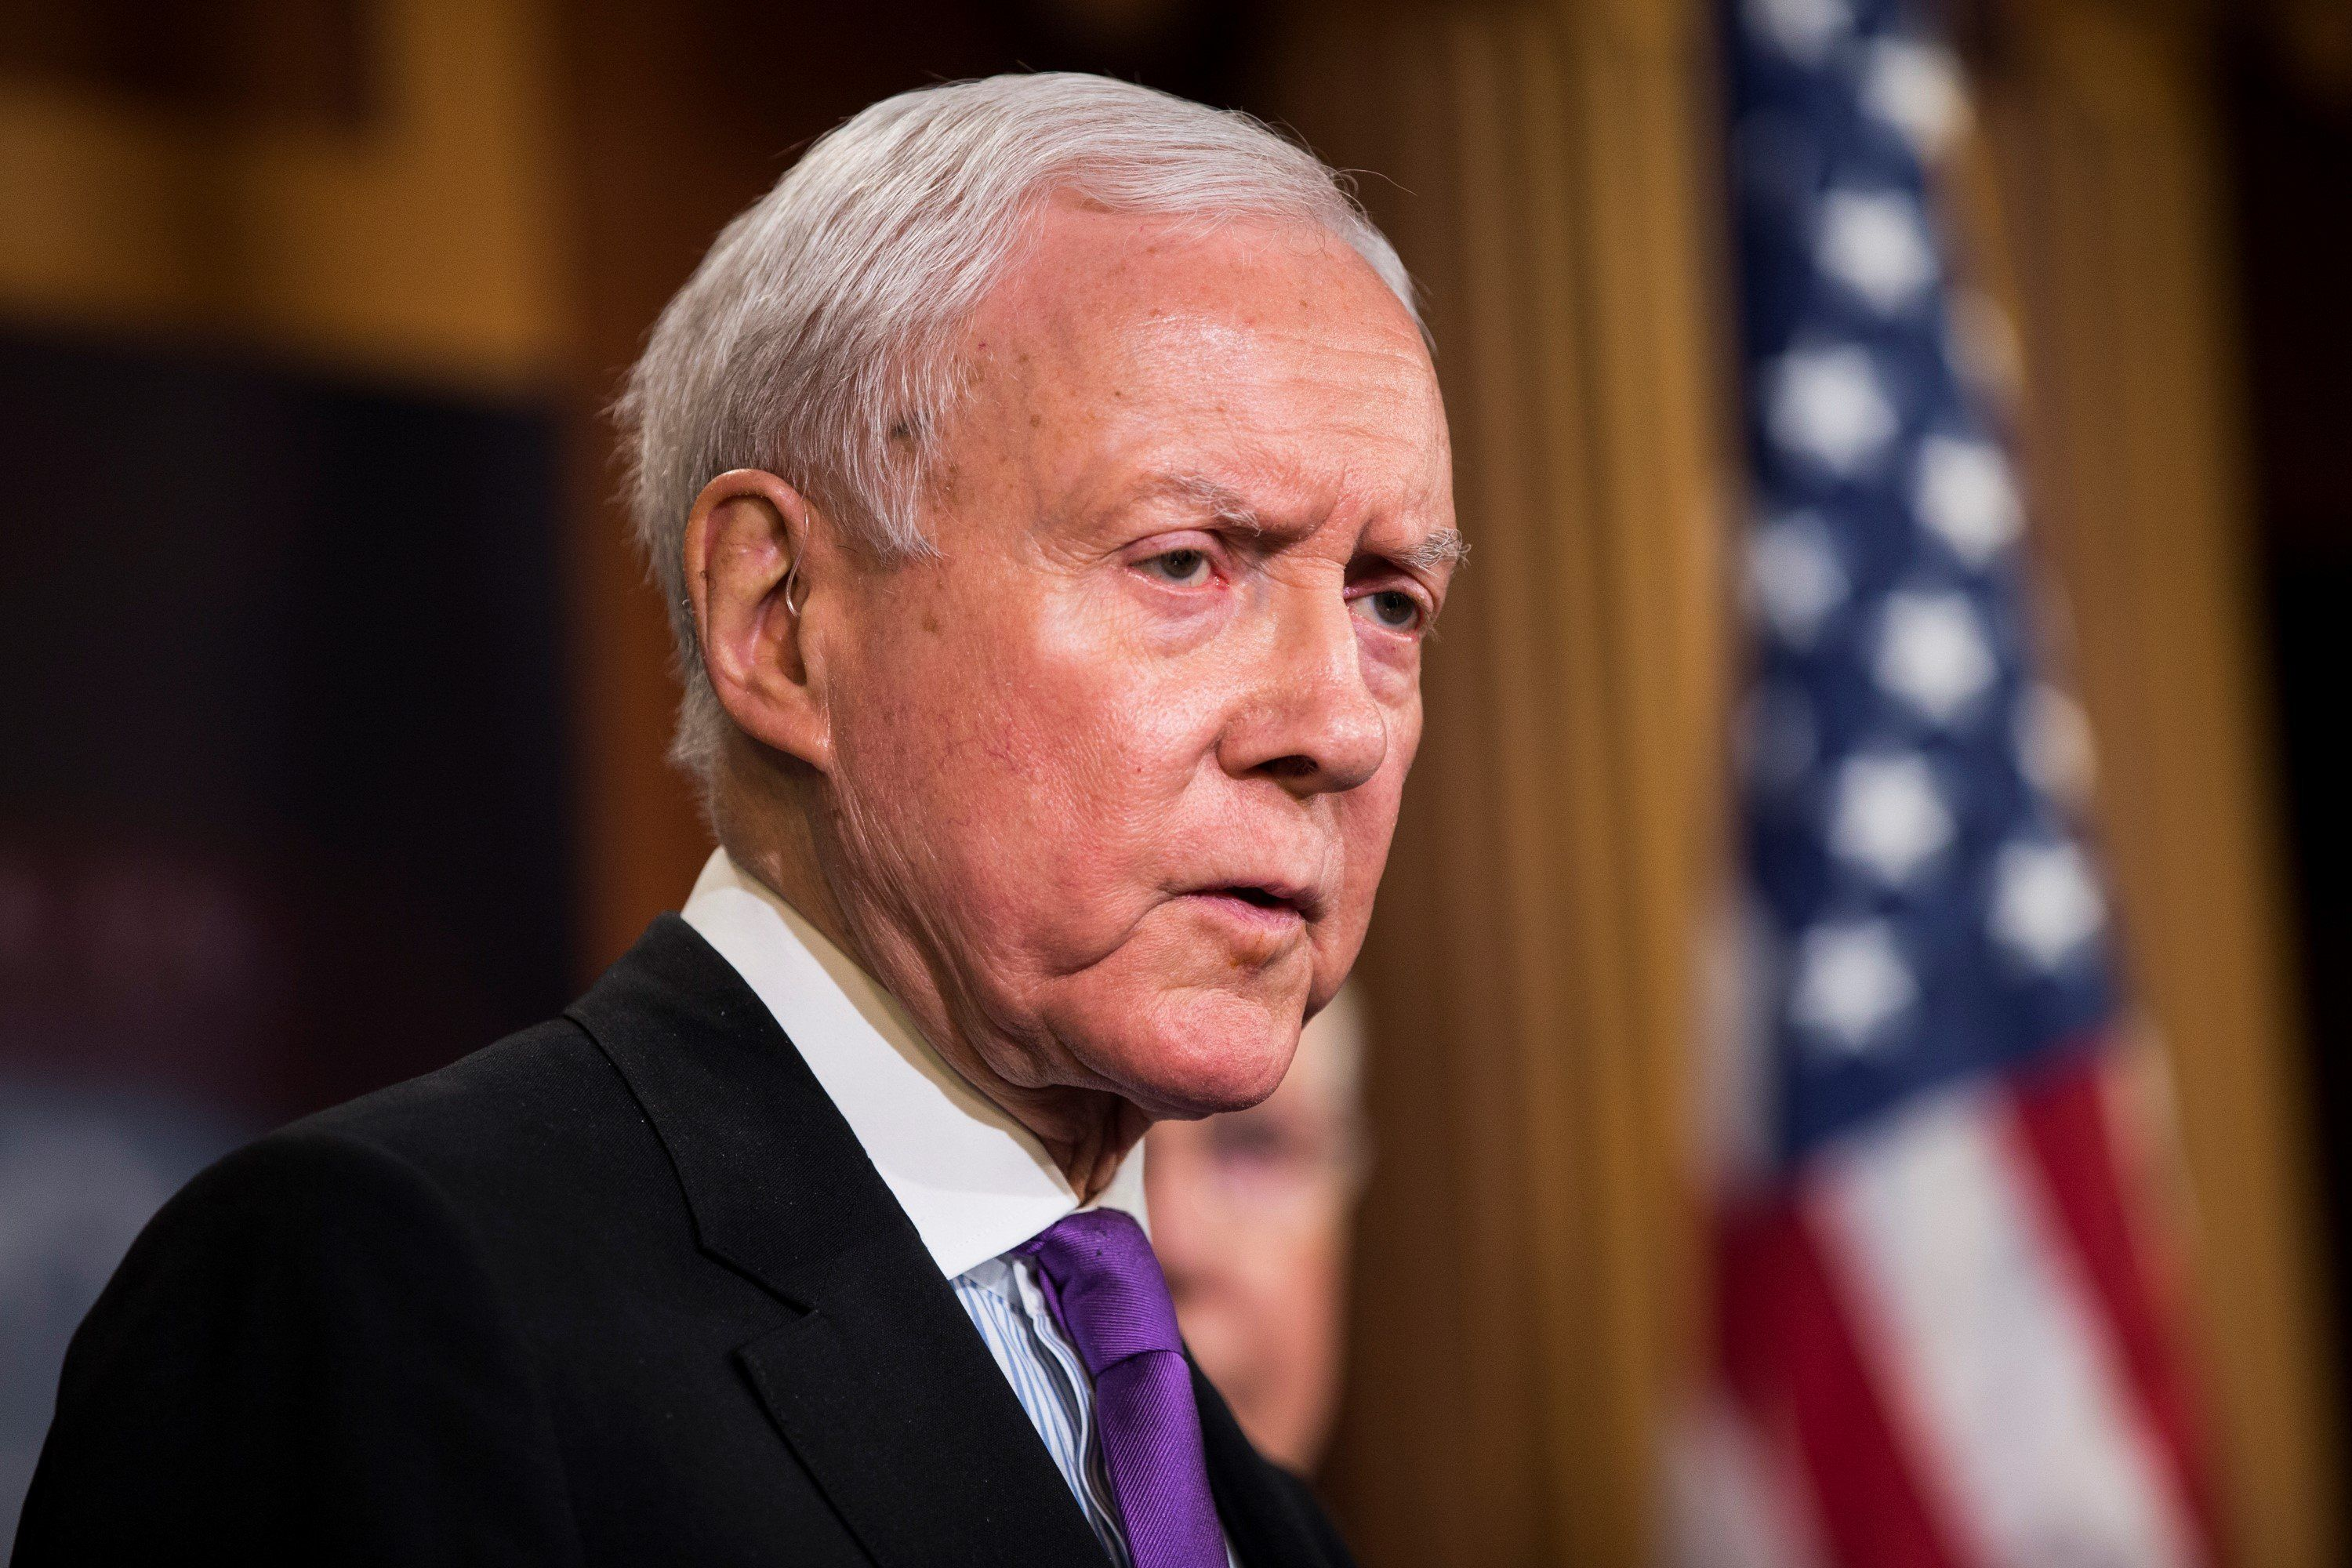 WASHINGTON, USA - FEBRUARY 11: Senator Orrin Hatch speaks during a press conference on the Internet Tax Ban and Customs Report in Washington, USA on February 11, 2016. (Photo by Samuel Corum/Anadolu Agency/Getty Images)